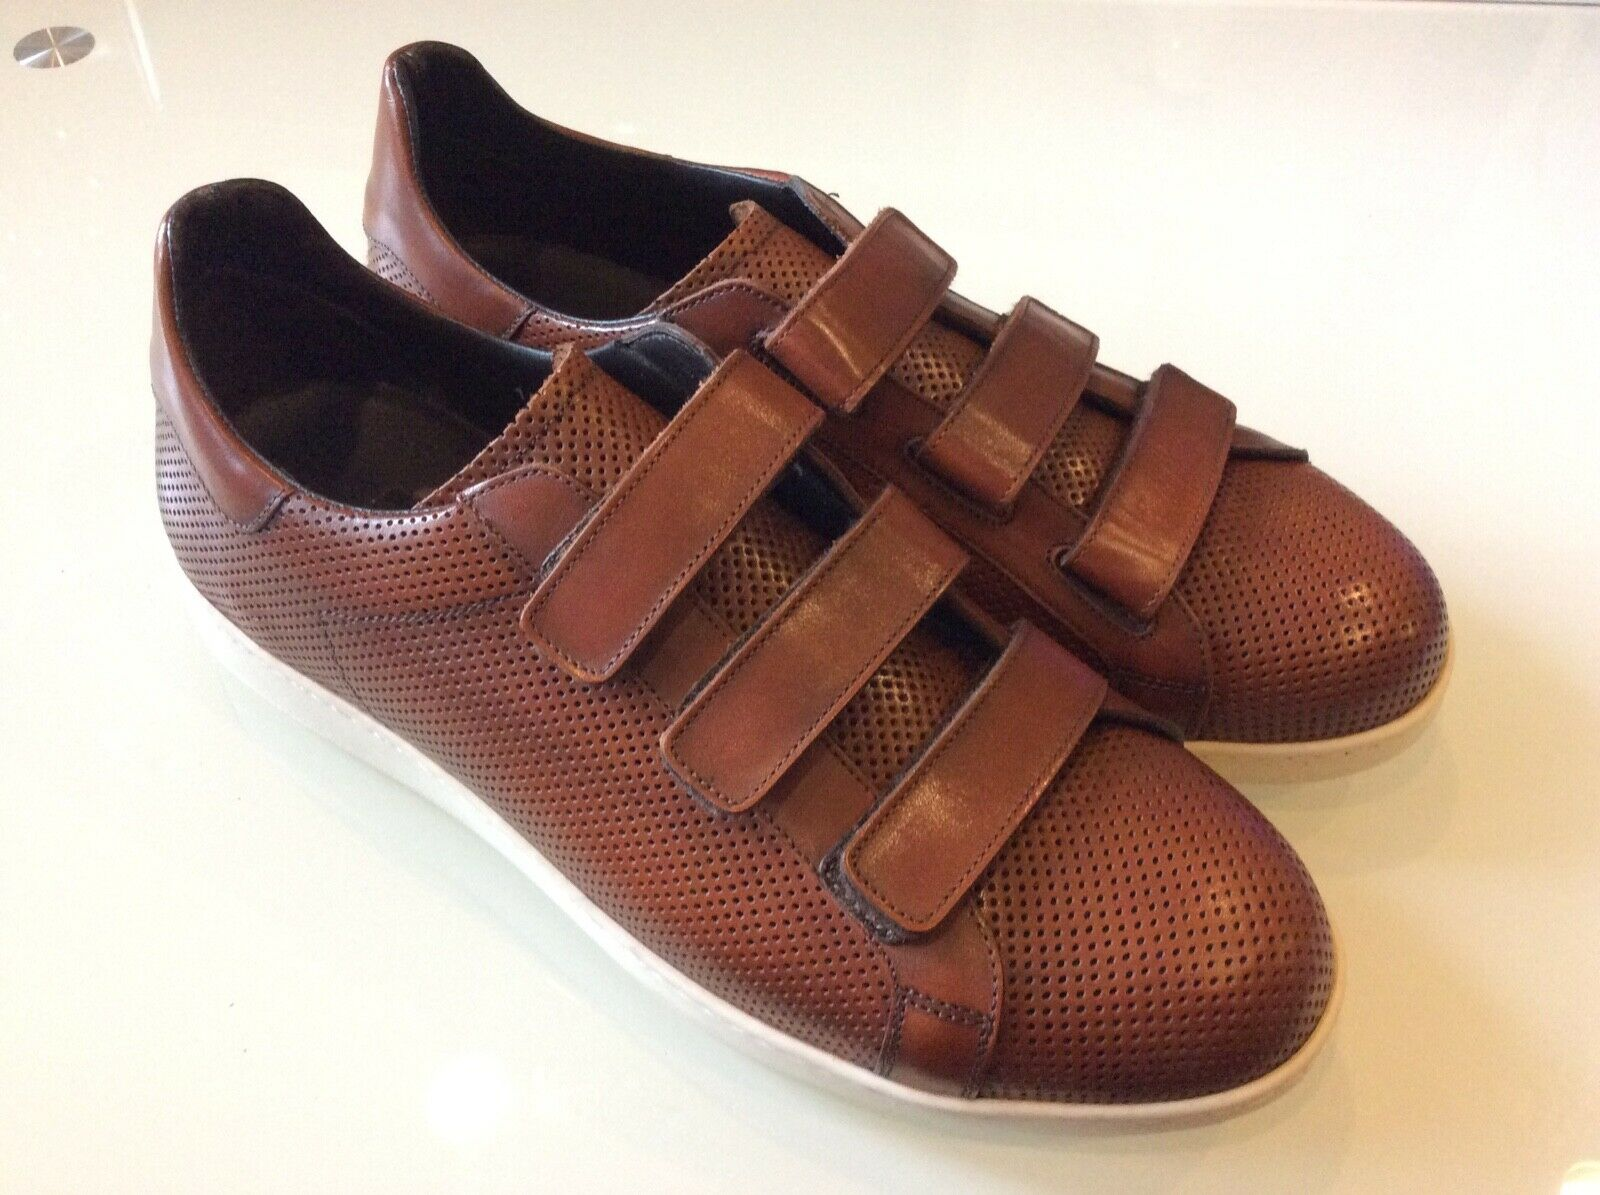 To Boot New York Men's Adelphi Tan Leather  Straps Sneakers Size 10.